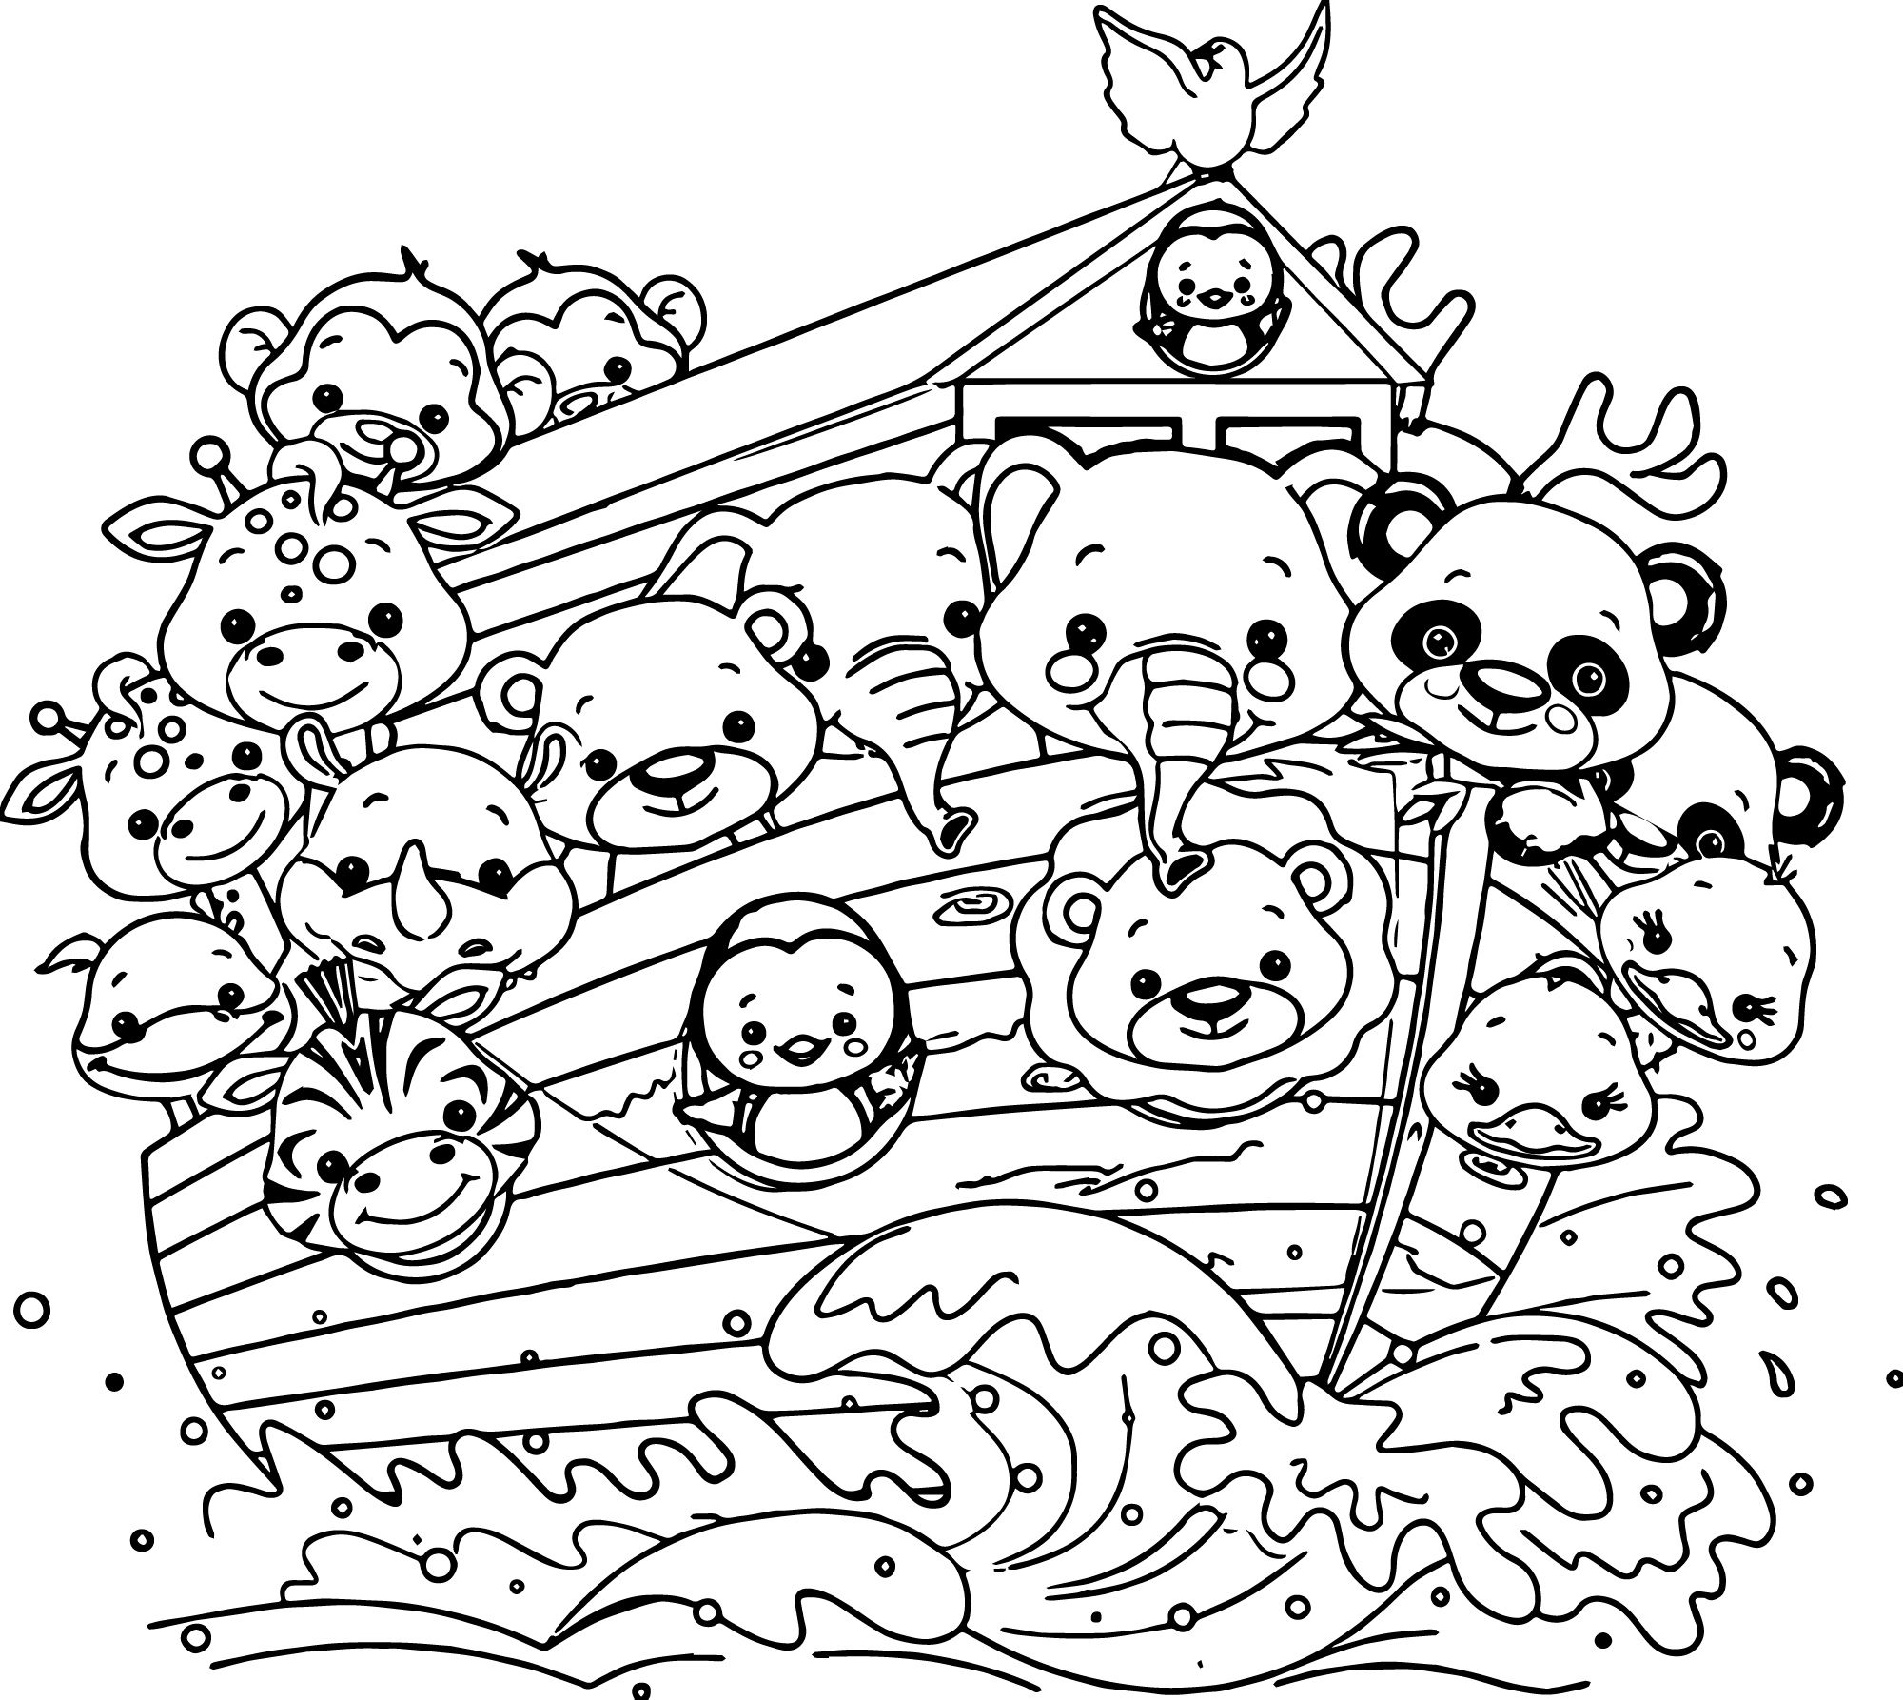 Noah's Ark Coloring Page Cartoon